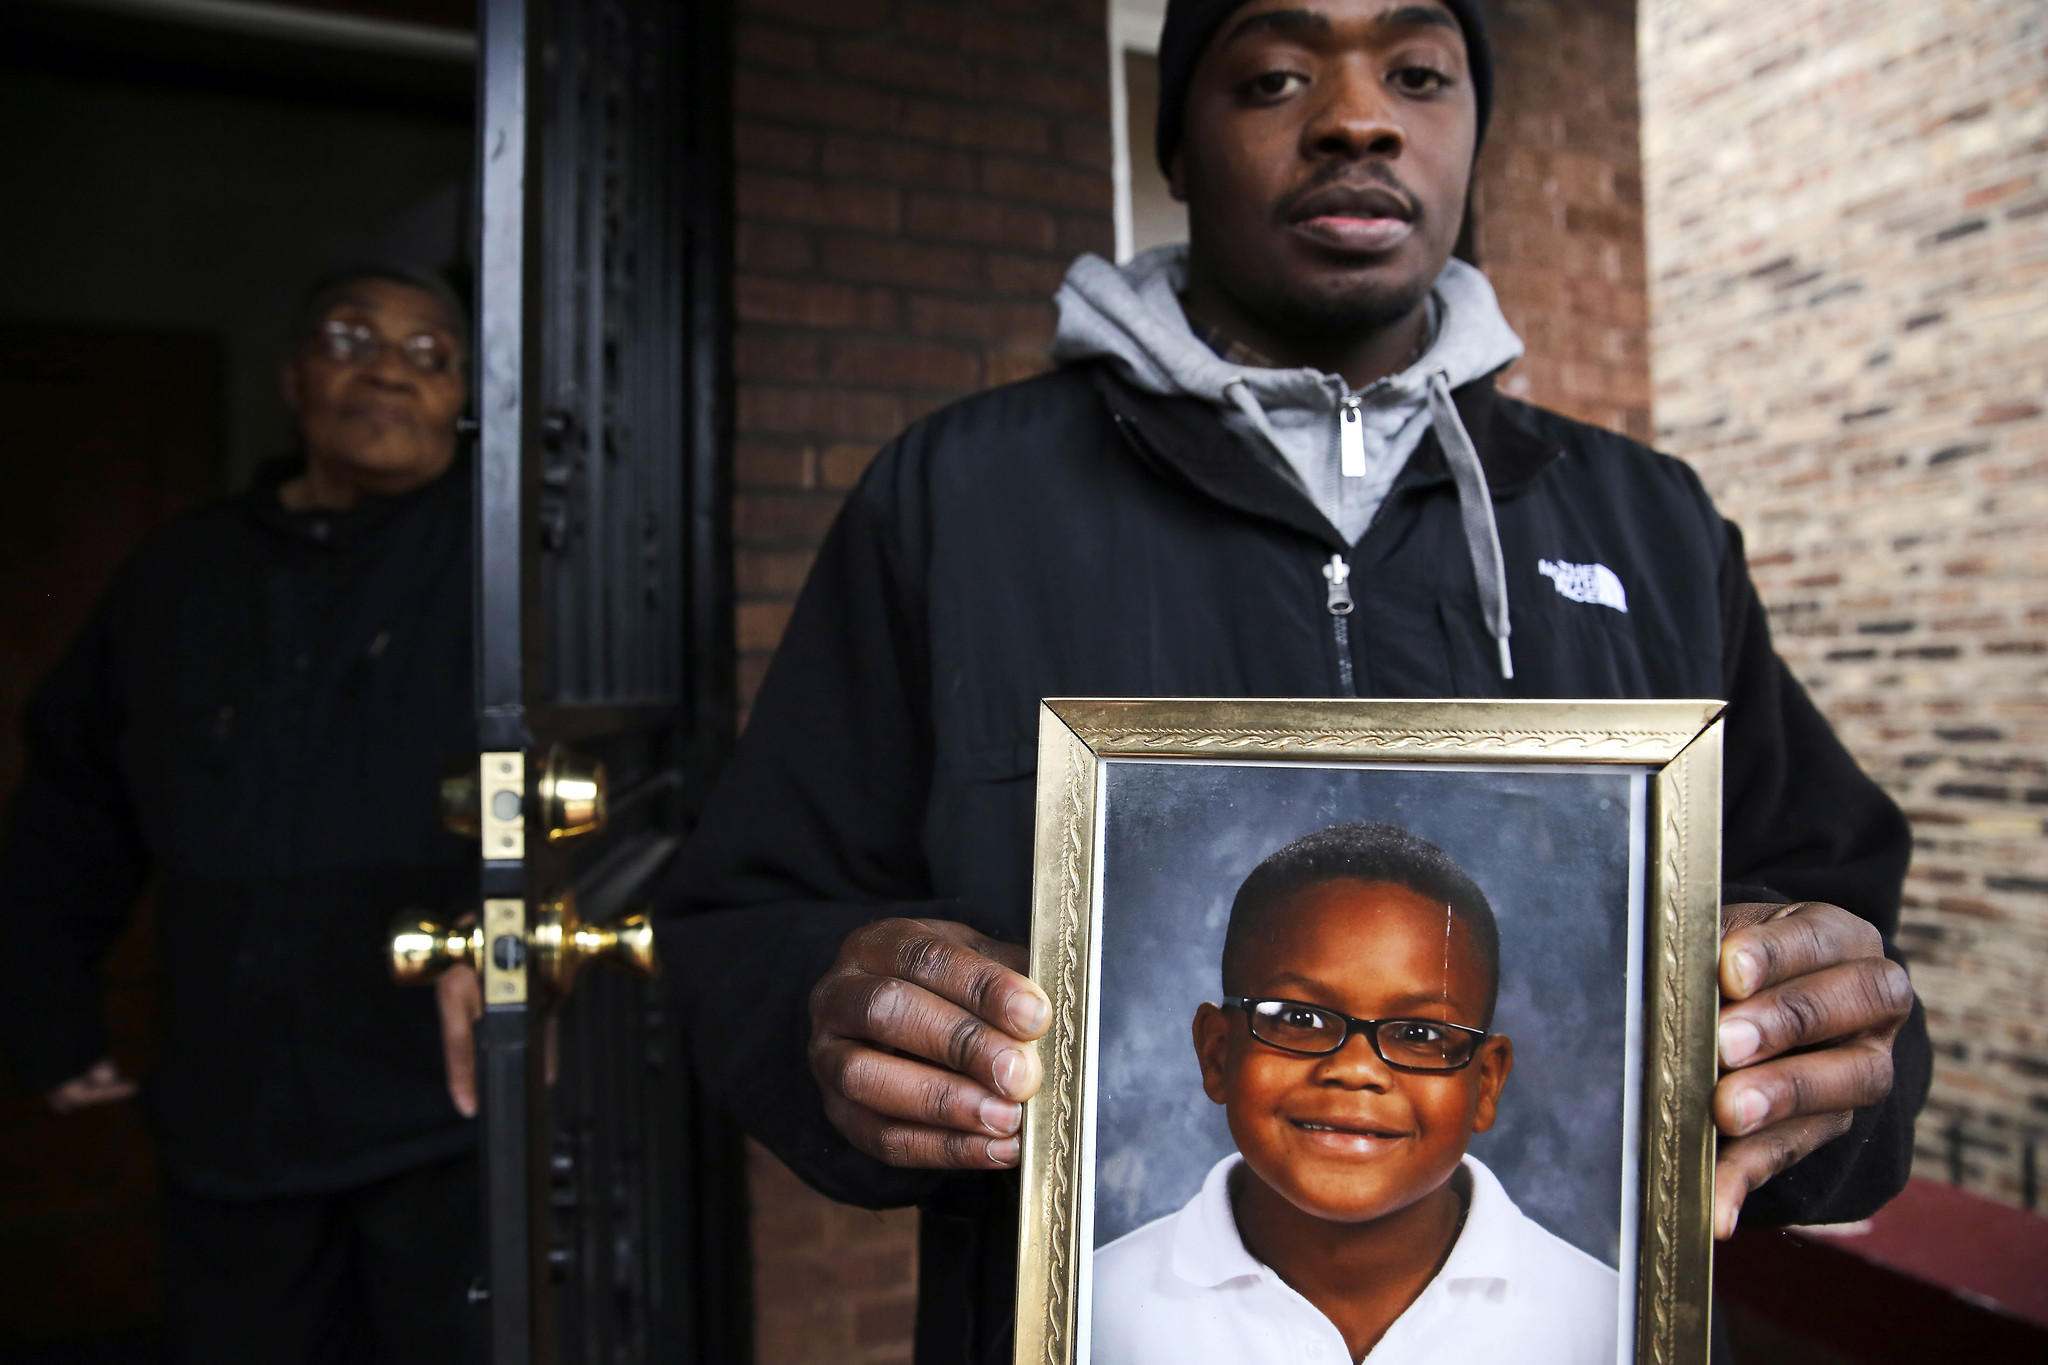 Richard Miller holds a photograph of his cousin, 11-year-old Donovan Turnage, who died Saturday afternoon after a traffic crash involving a stolen vehicle.